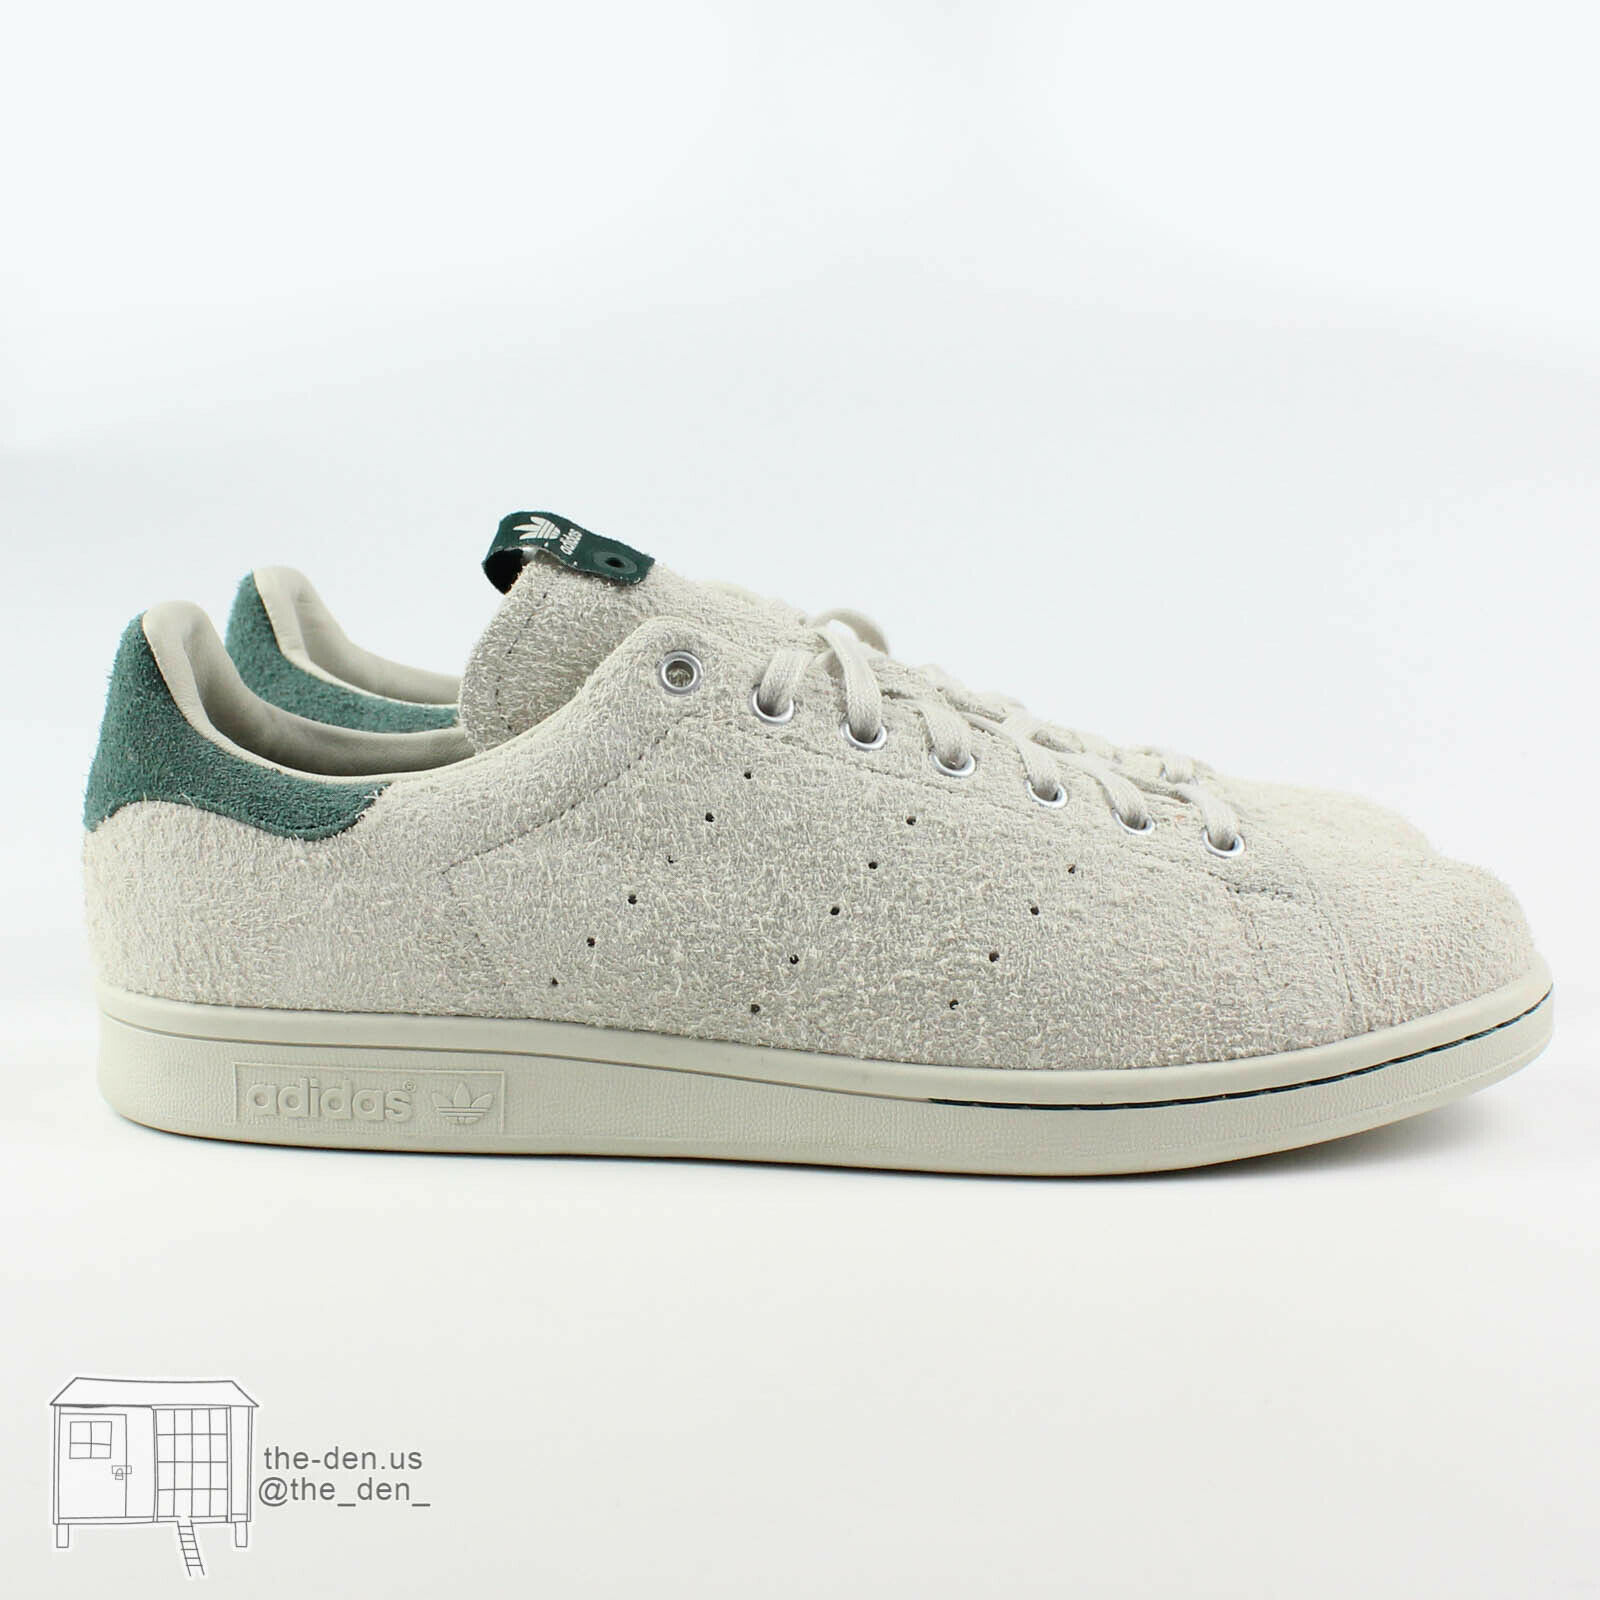 Adidas Consortium x Juice Stan Smith World Tour Talc Originals Taille 12